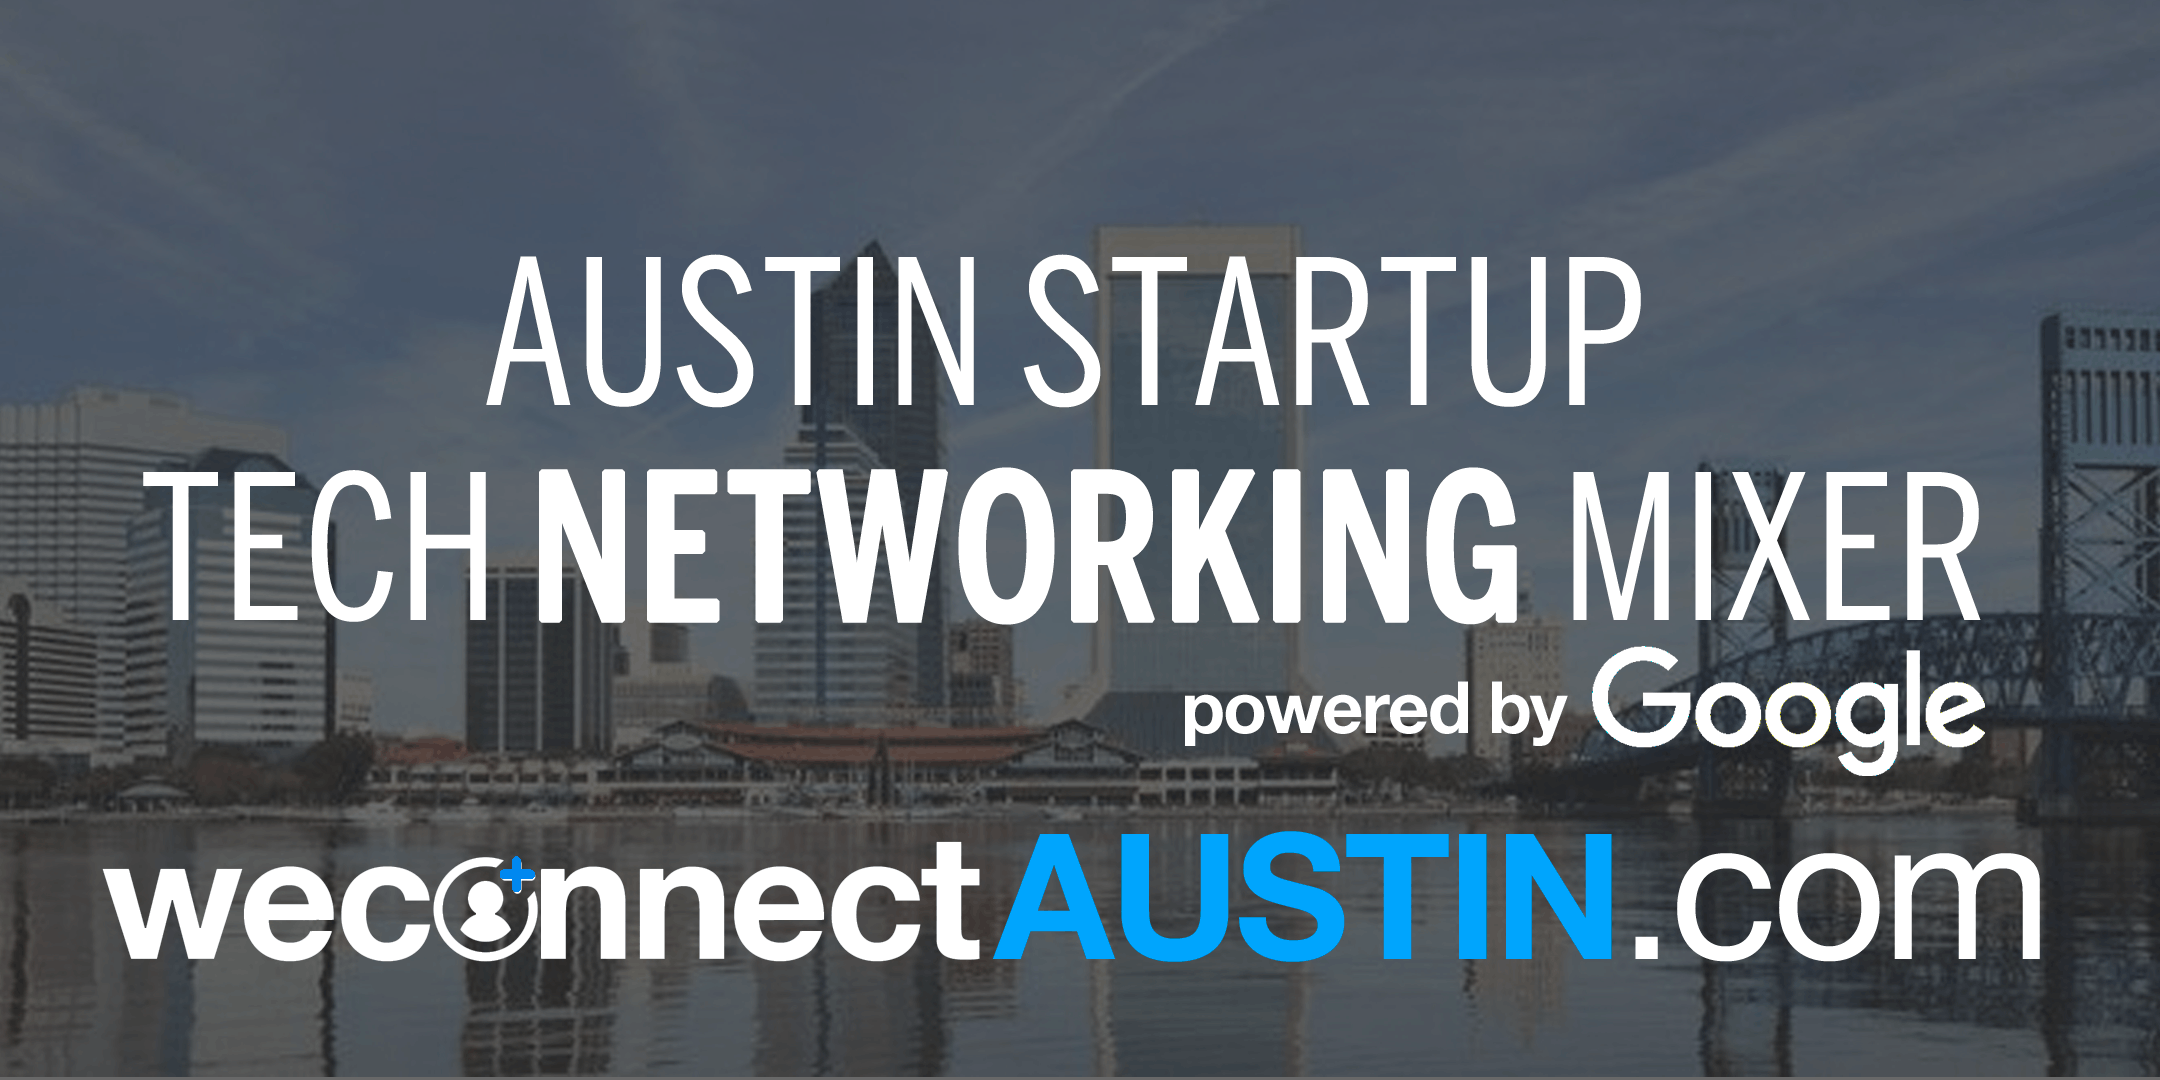 weconnect® Austin Startup and Tech Networking